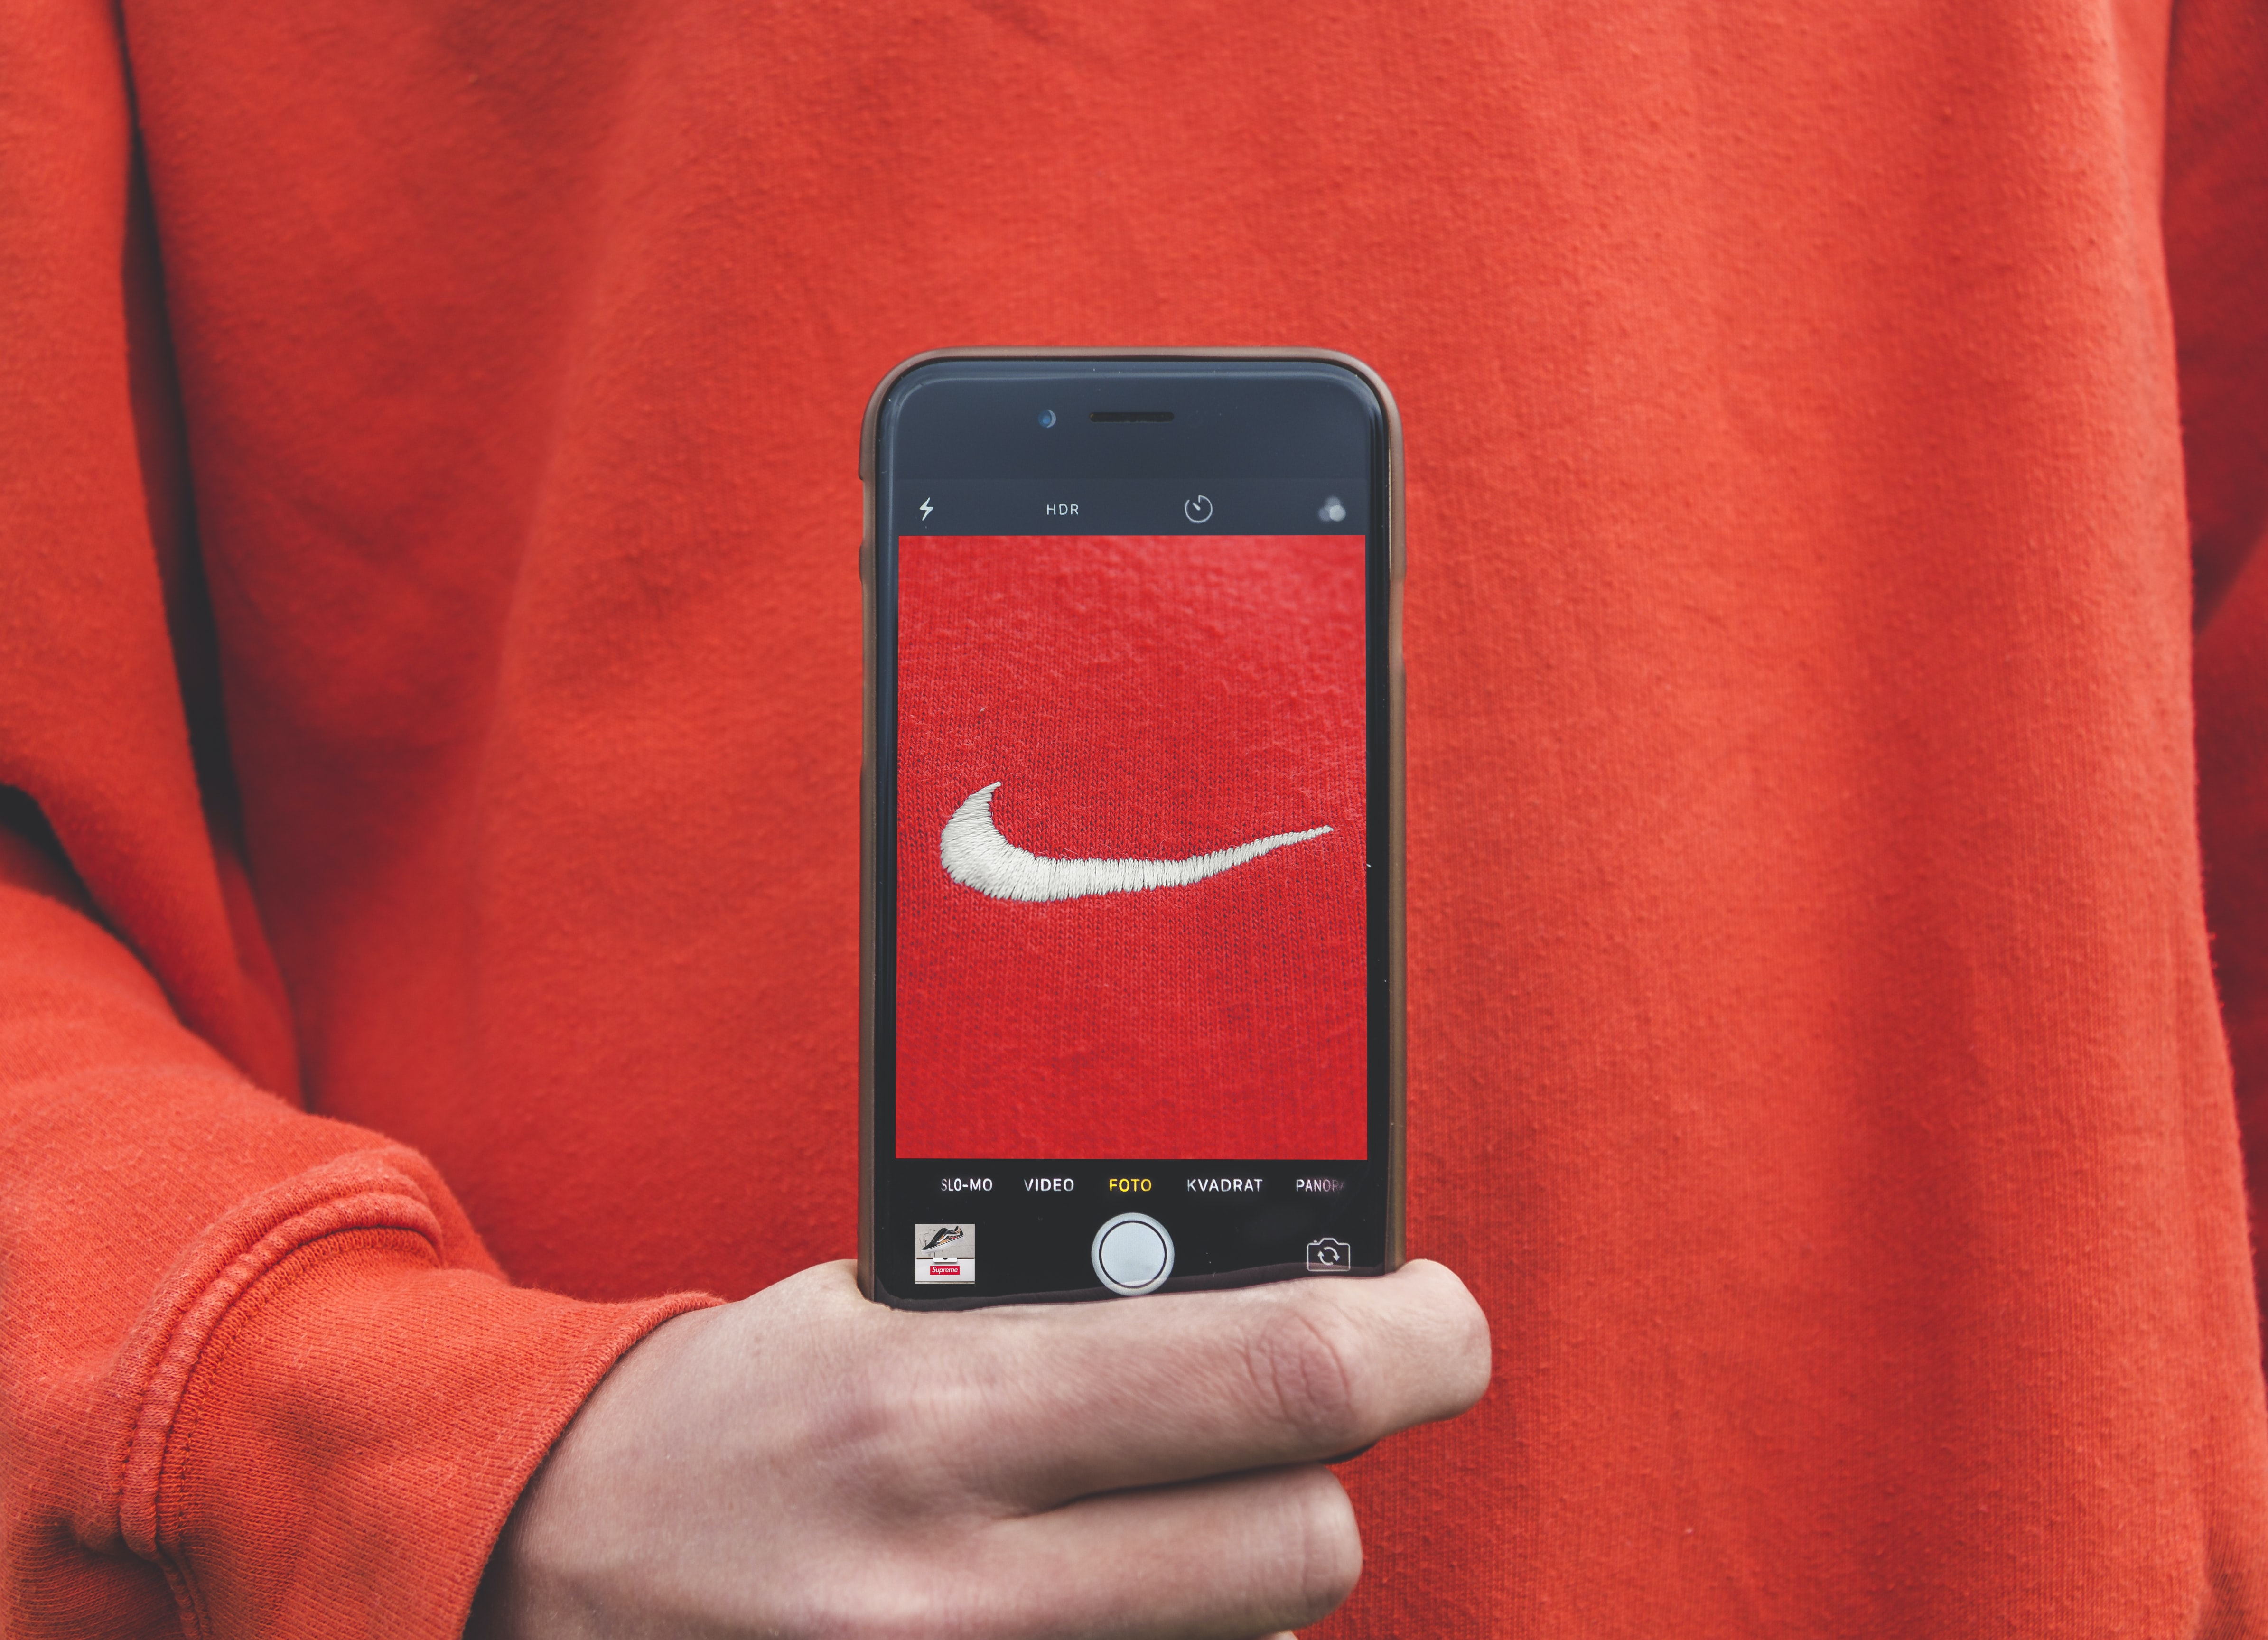 person holding iPhone taking picture on Nike label